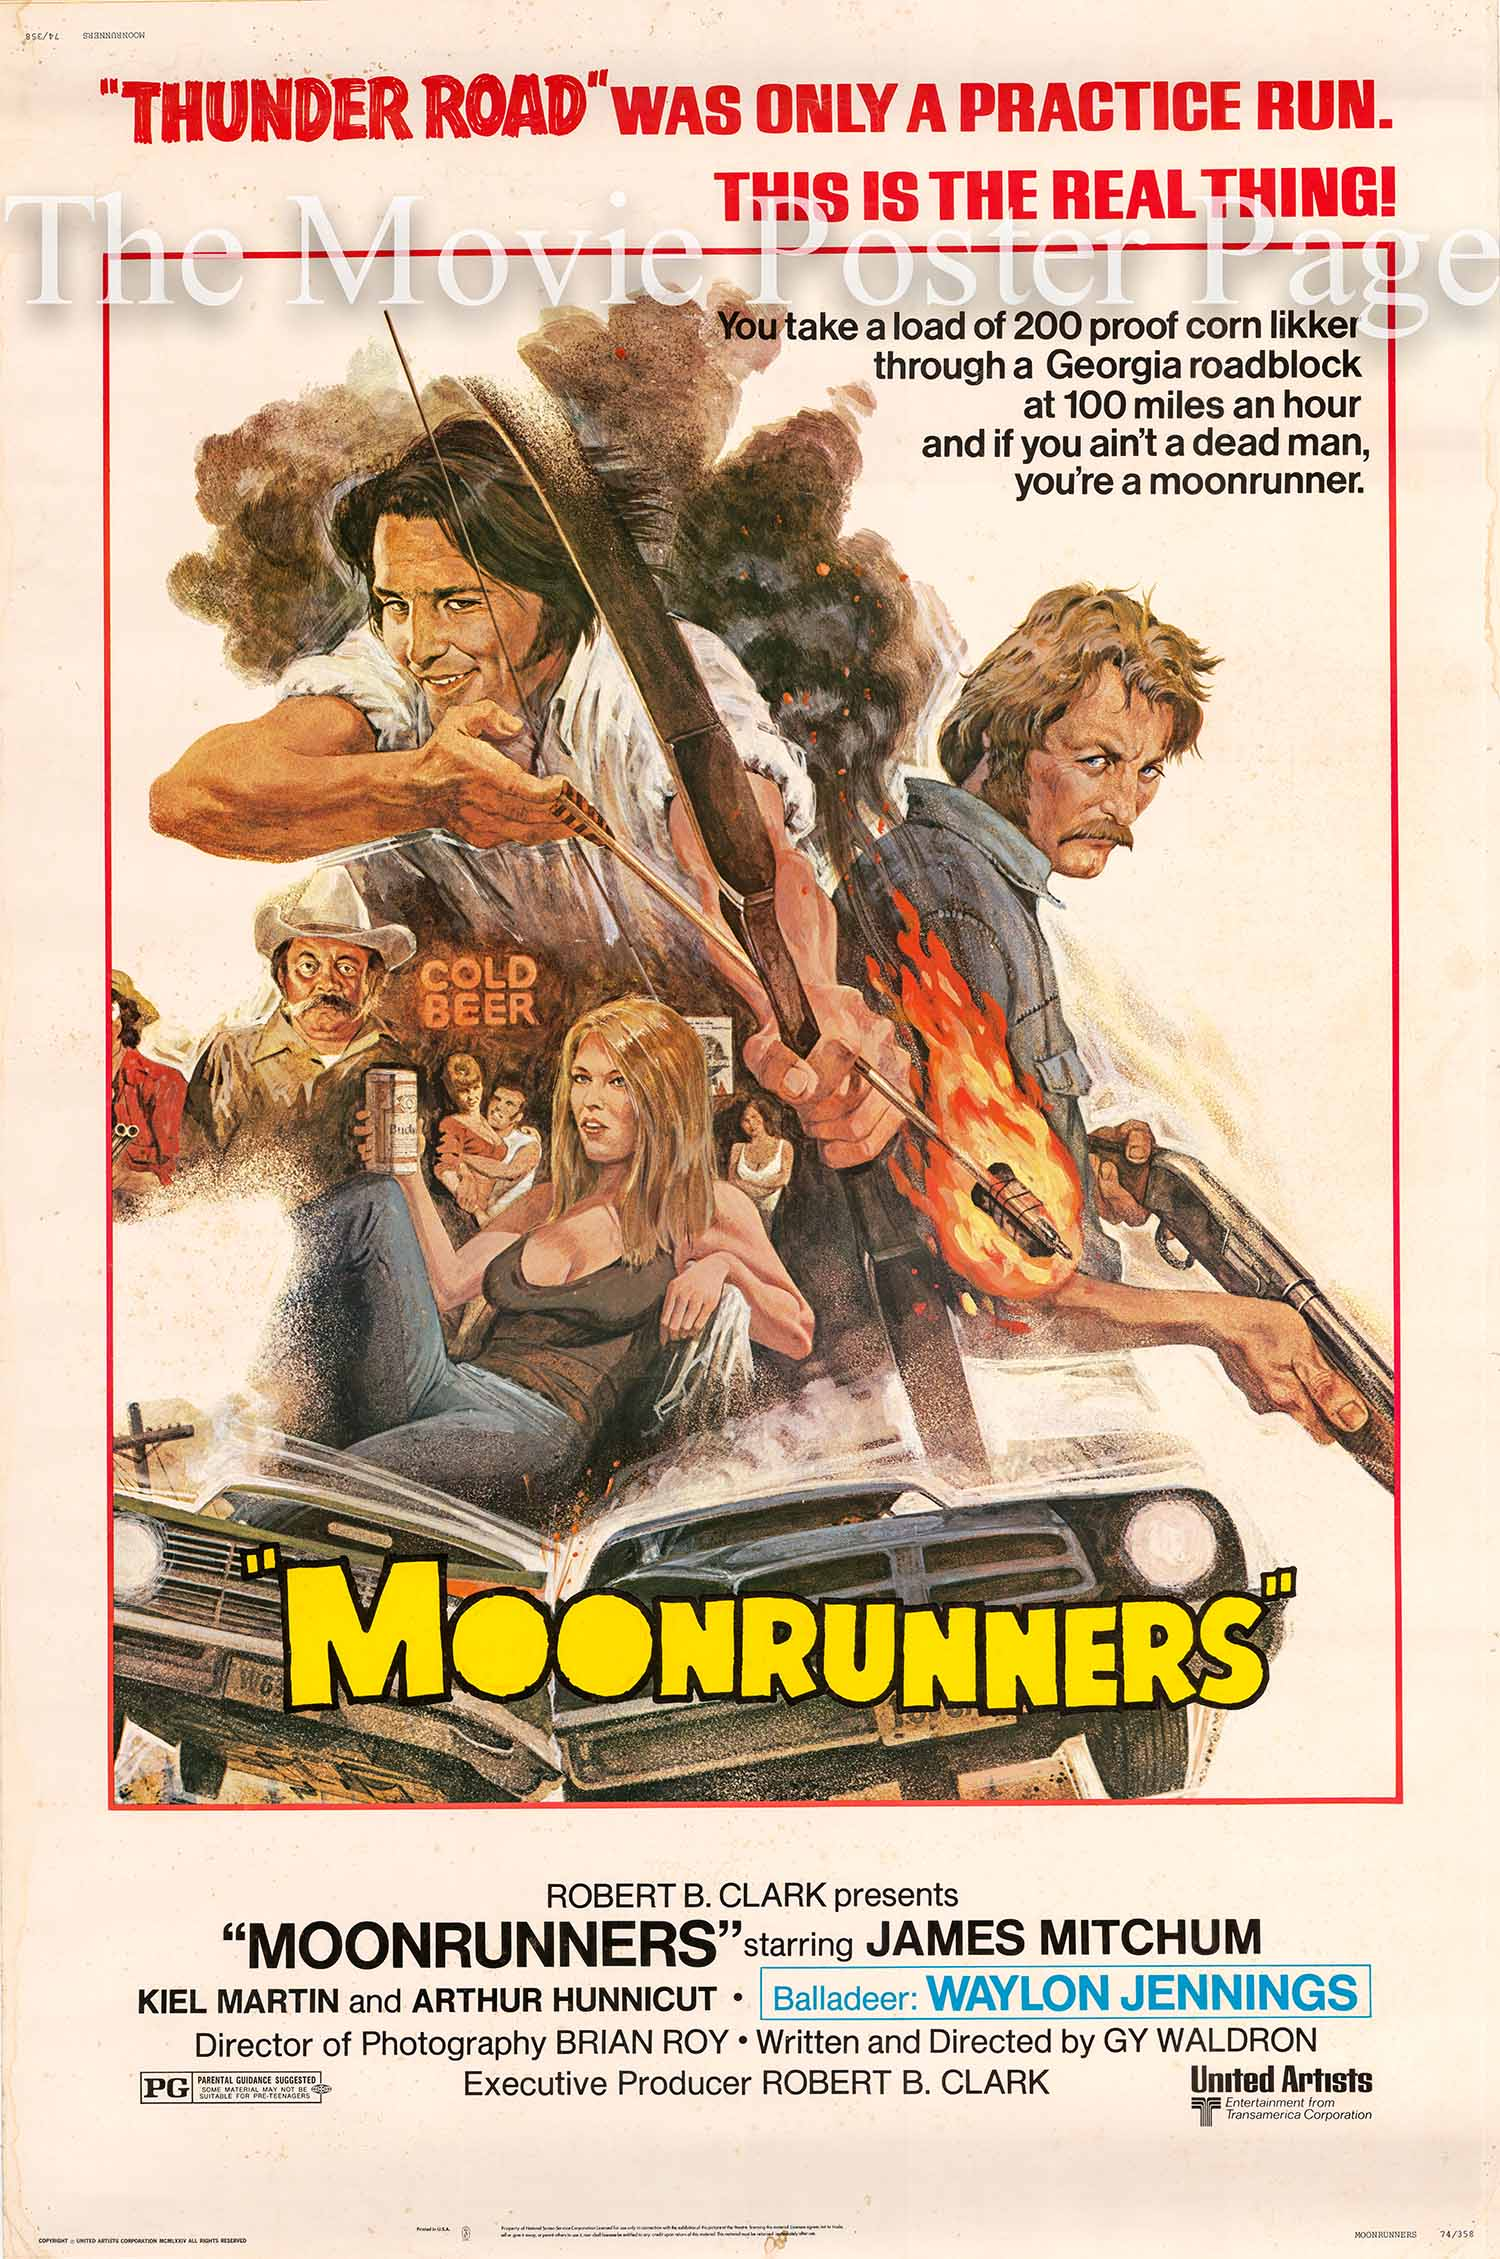 Pictured is a US 40x60 promotional poster for the 1974 Gy Waldron film Moonrunners starring James Mitchum.